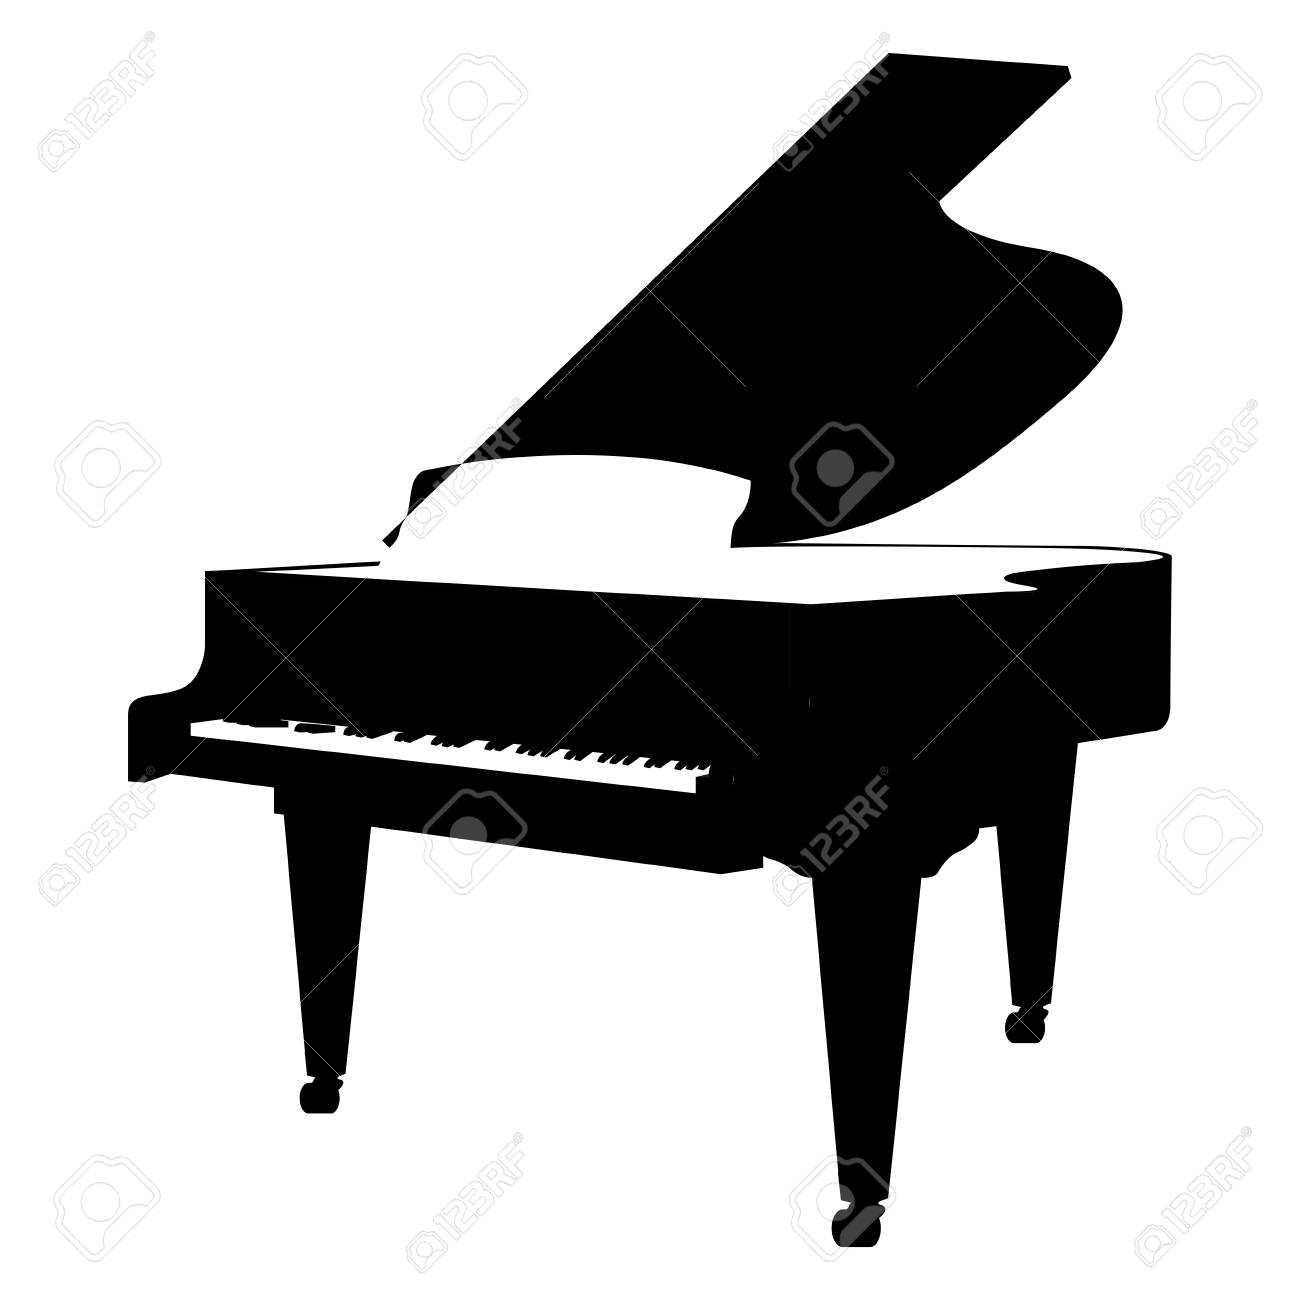 Isolated Silhouette Of A Piano Vector Illustration Stock